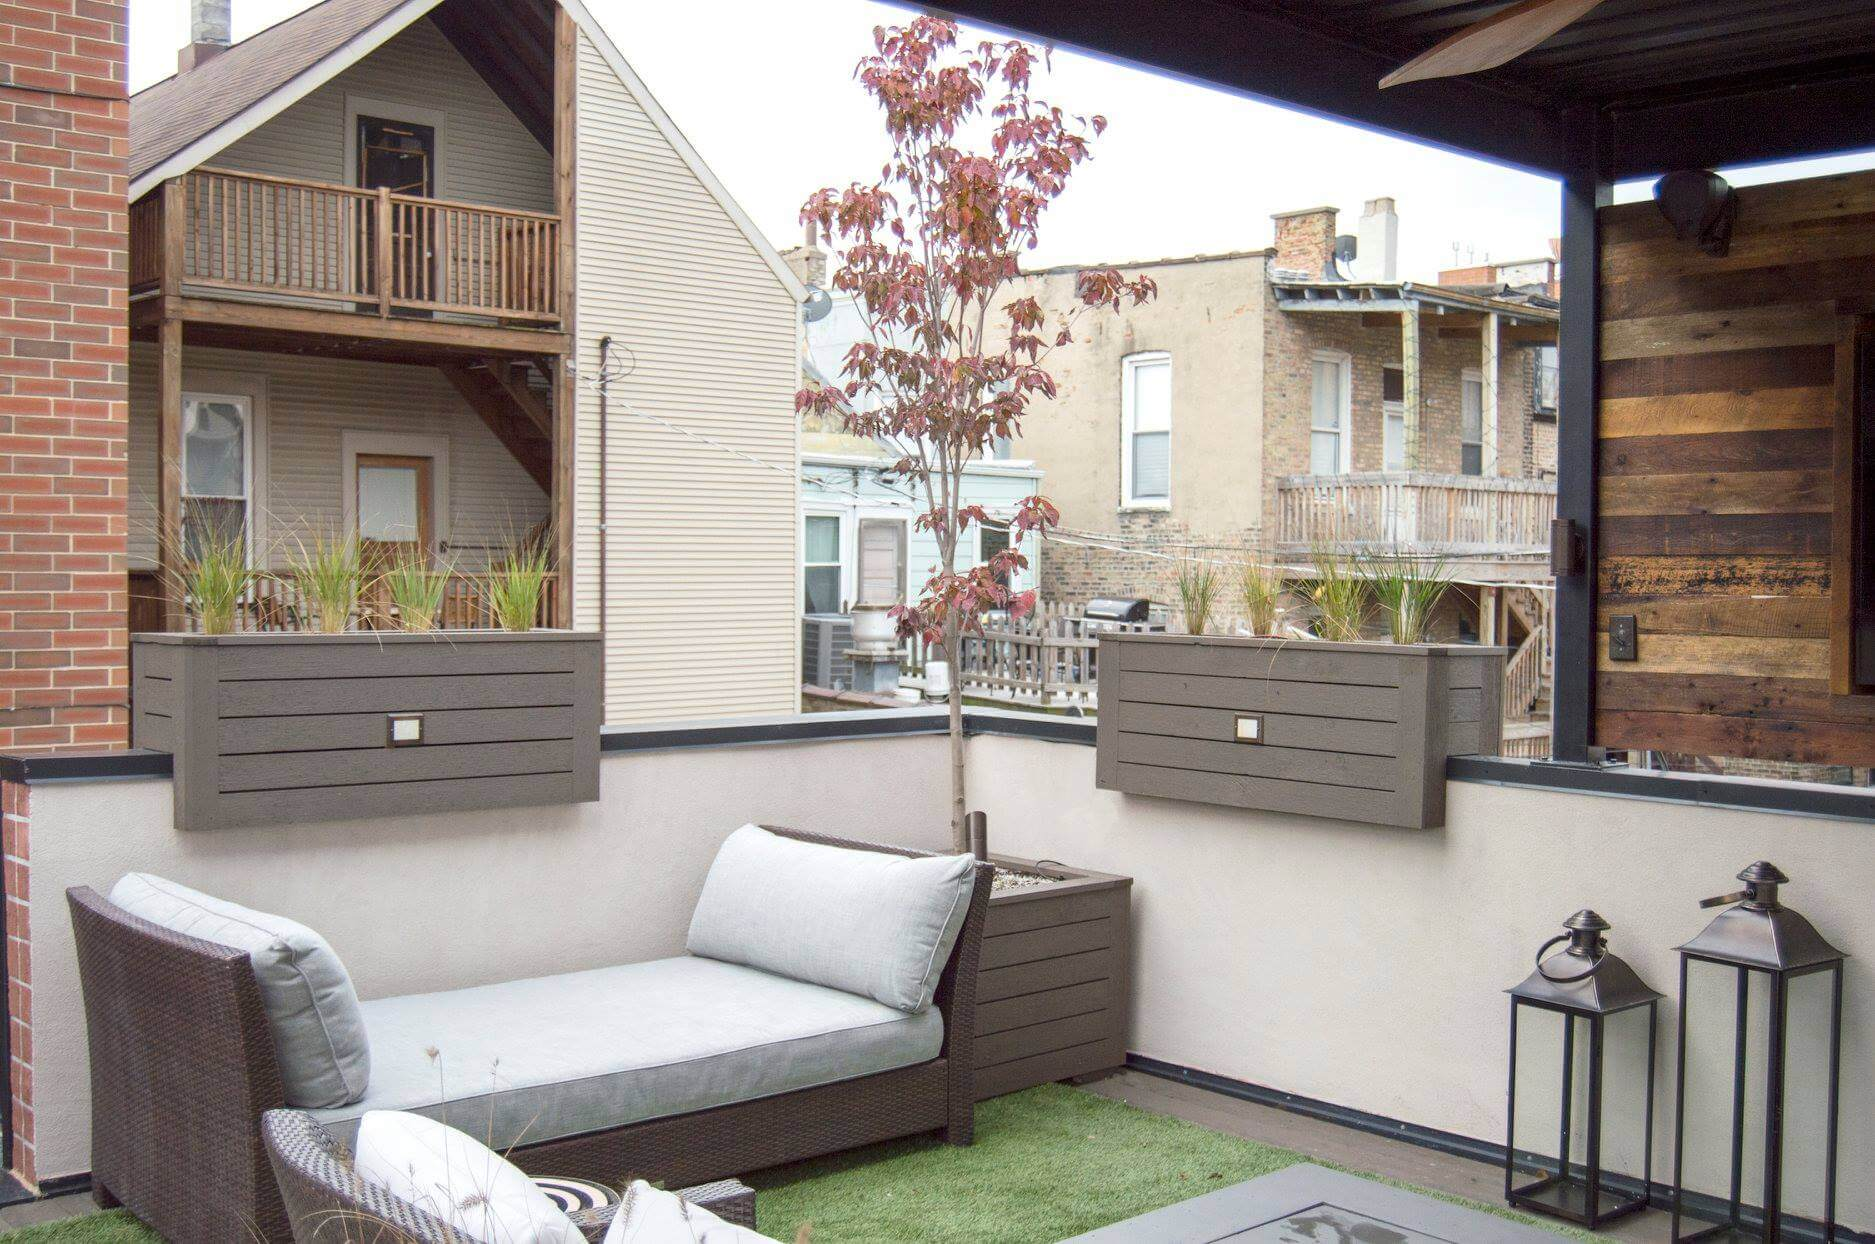 Rooftop lounge with planters